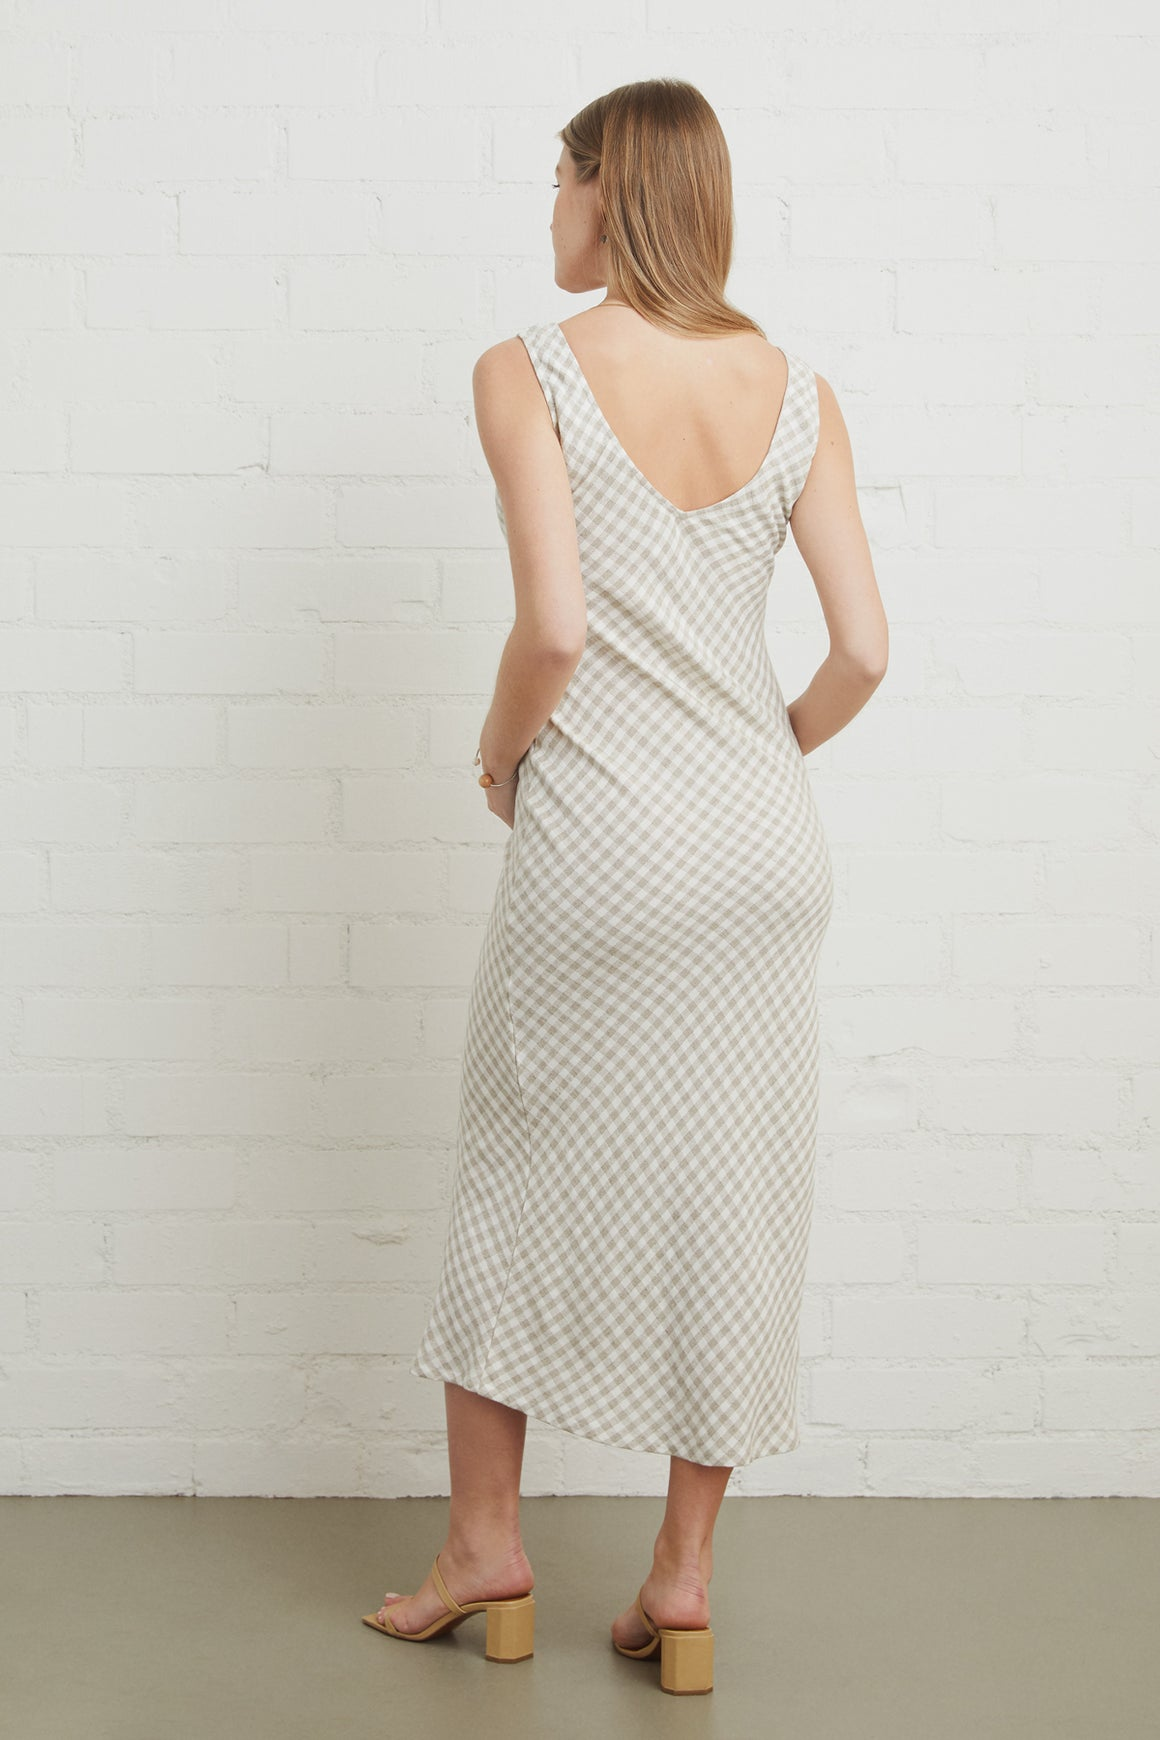 Linen Bias Dress - Maternity